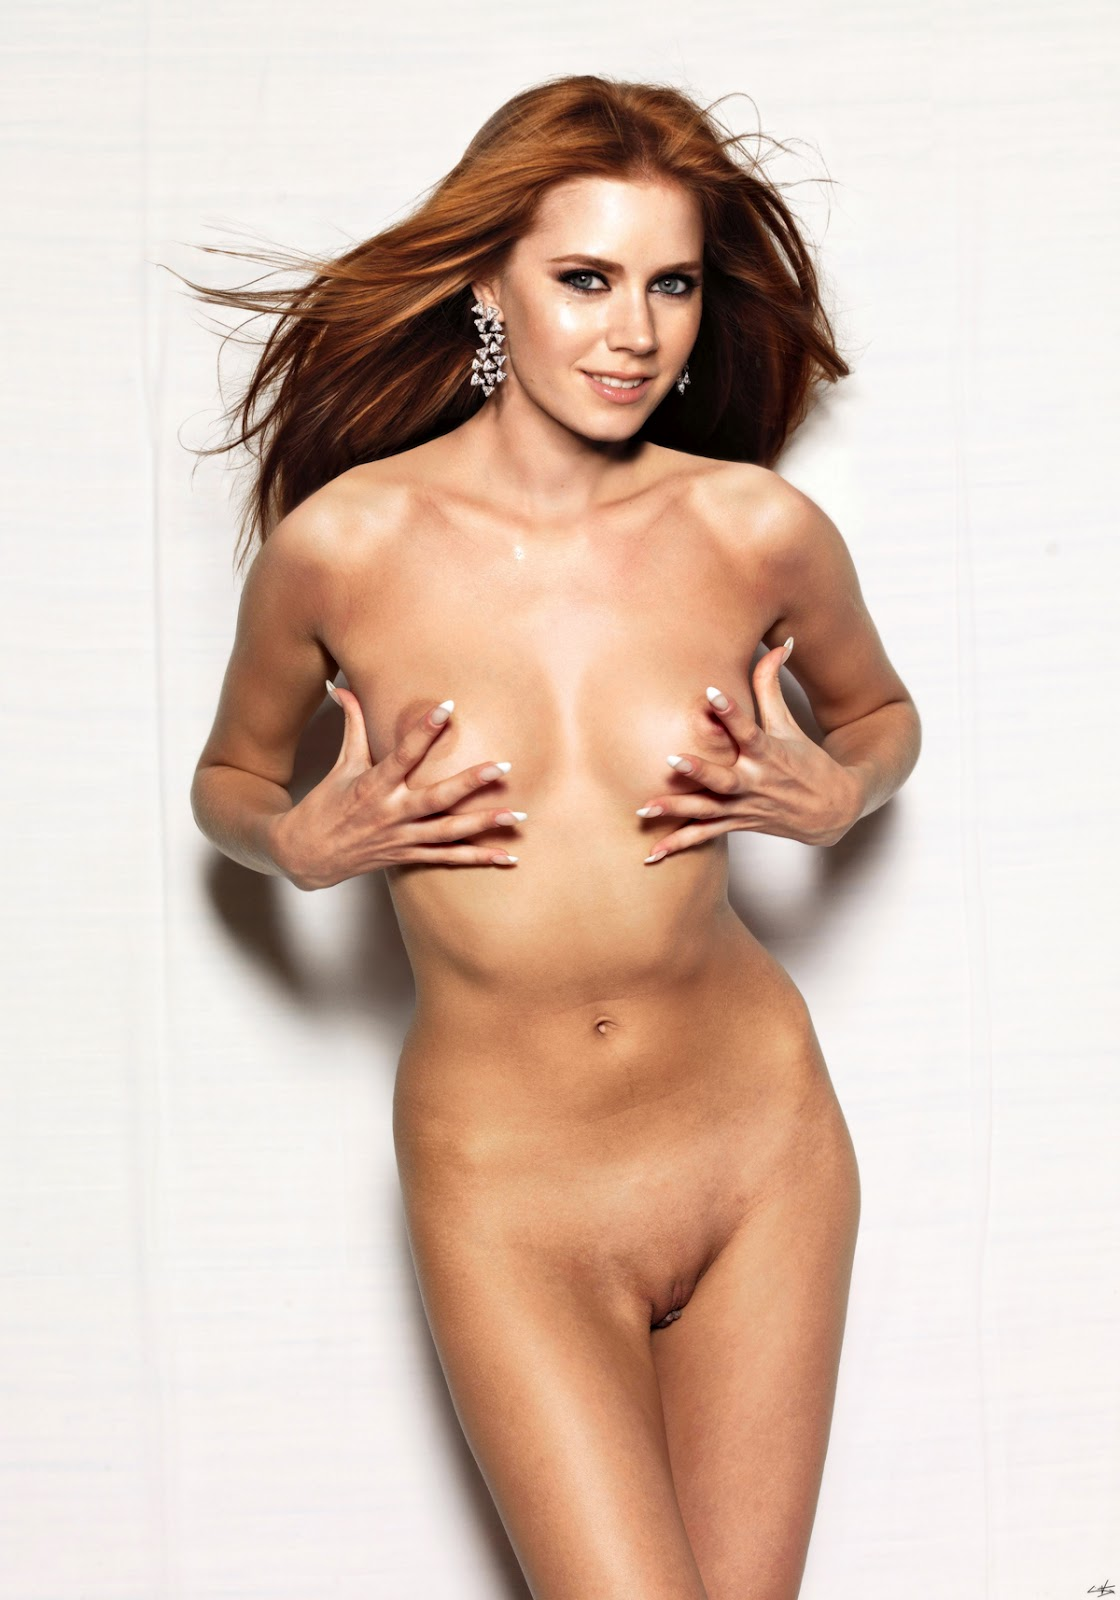 Amy Adams Hot Naked amy adam fakes porn pics - pics and galleries